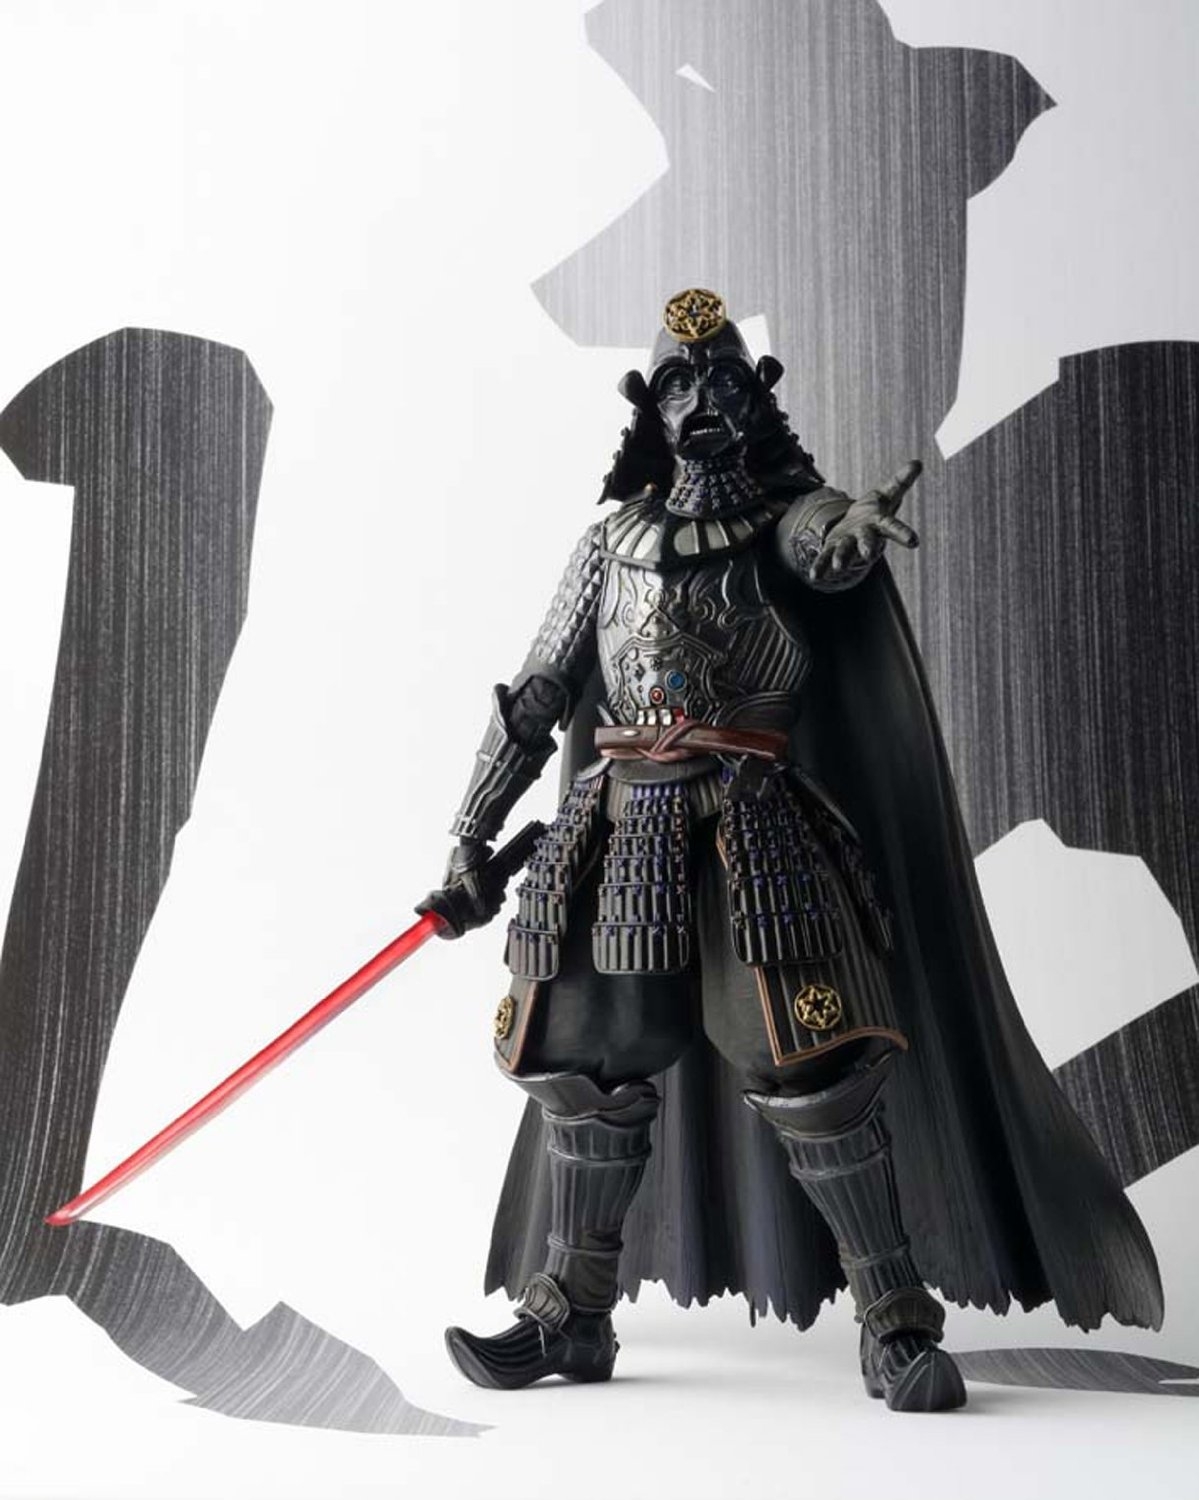 Darth Vader Samurai MOVIE REALIZATION Star Wars